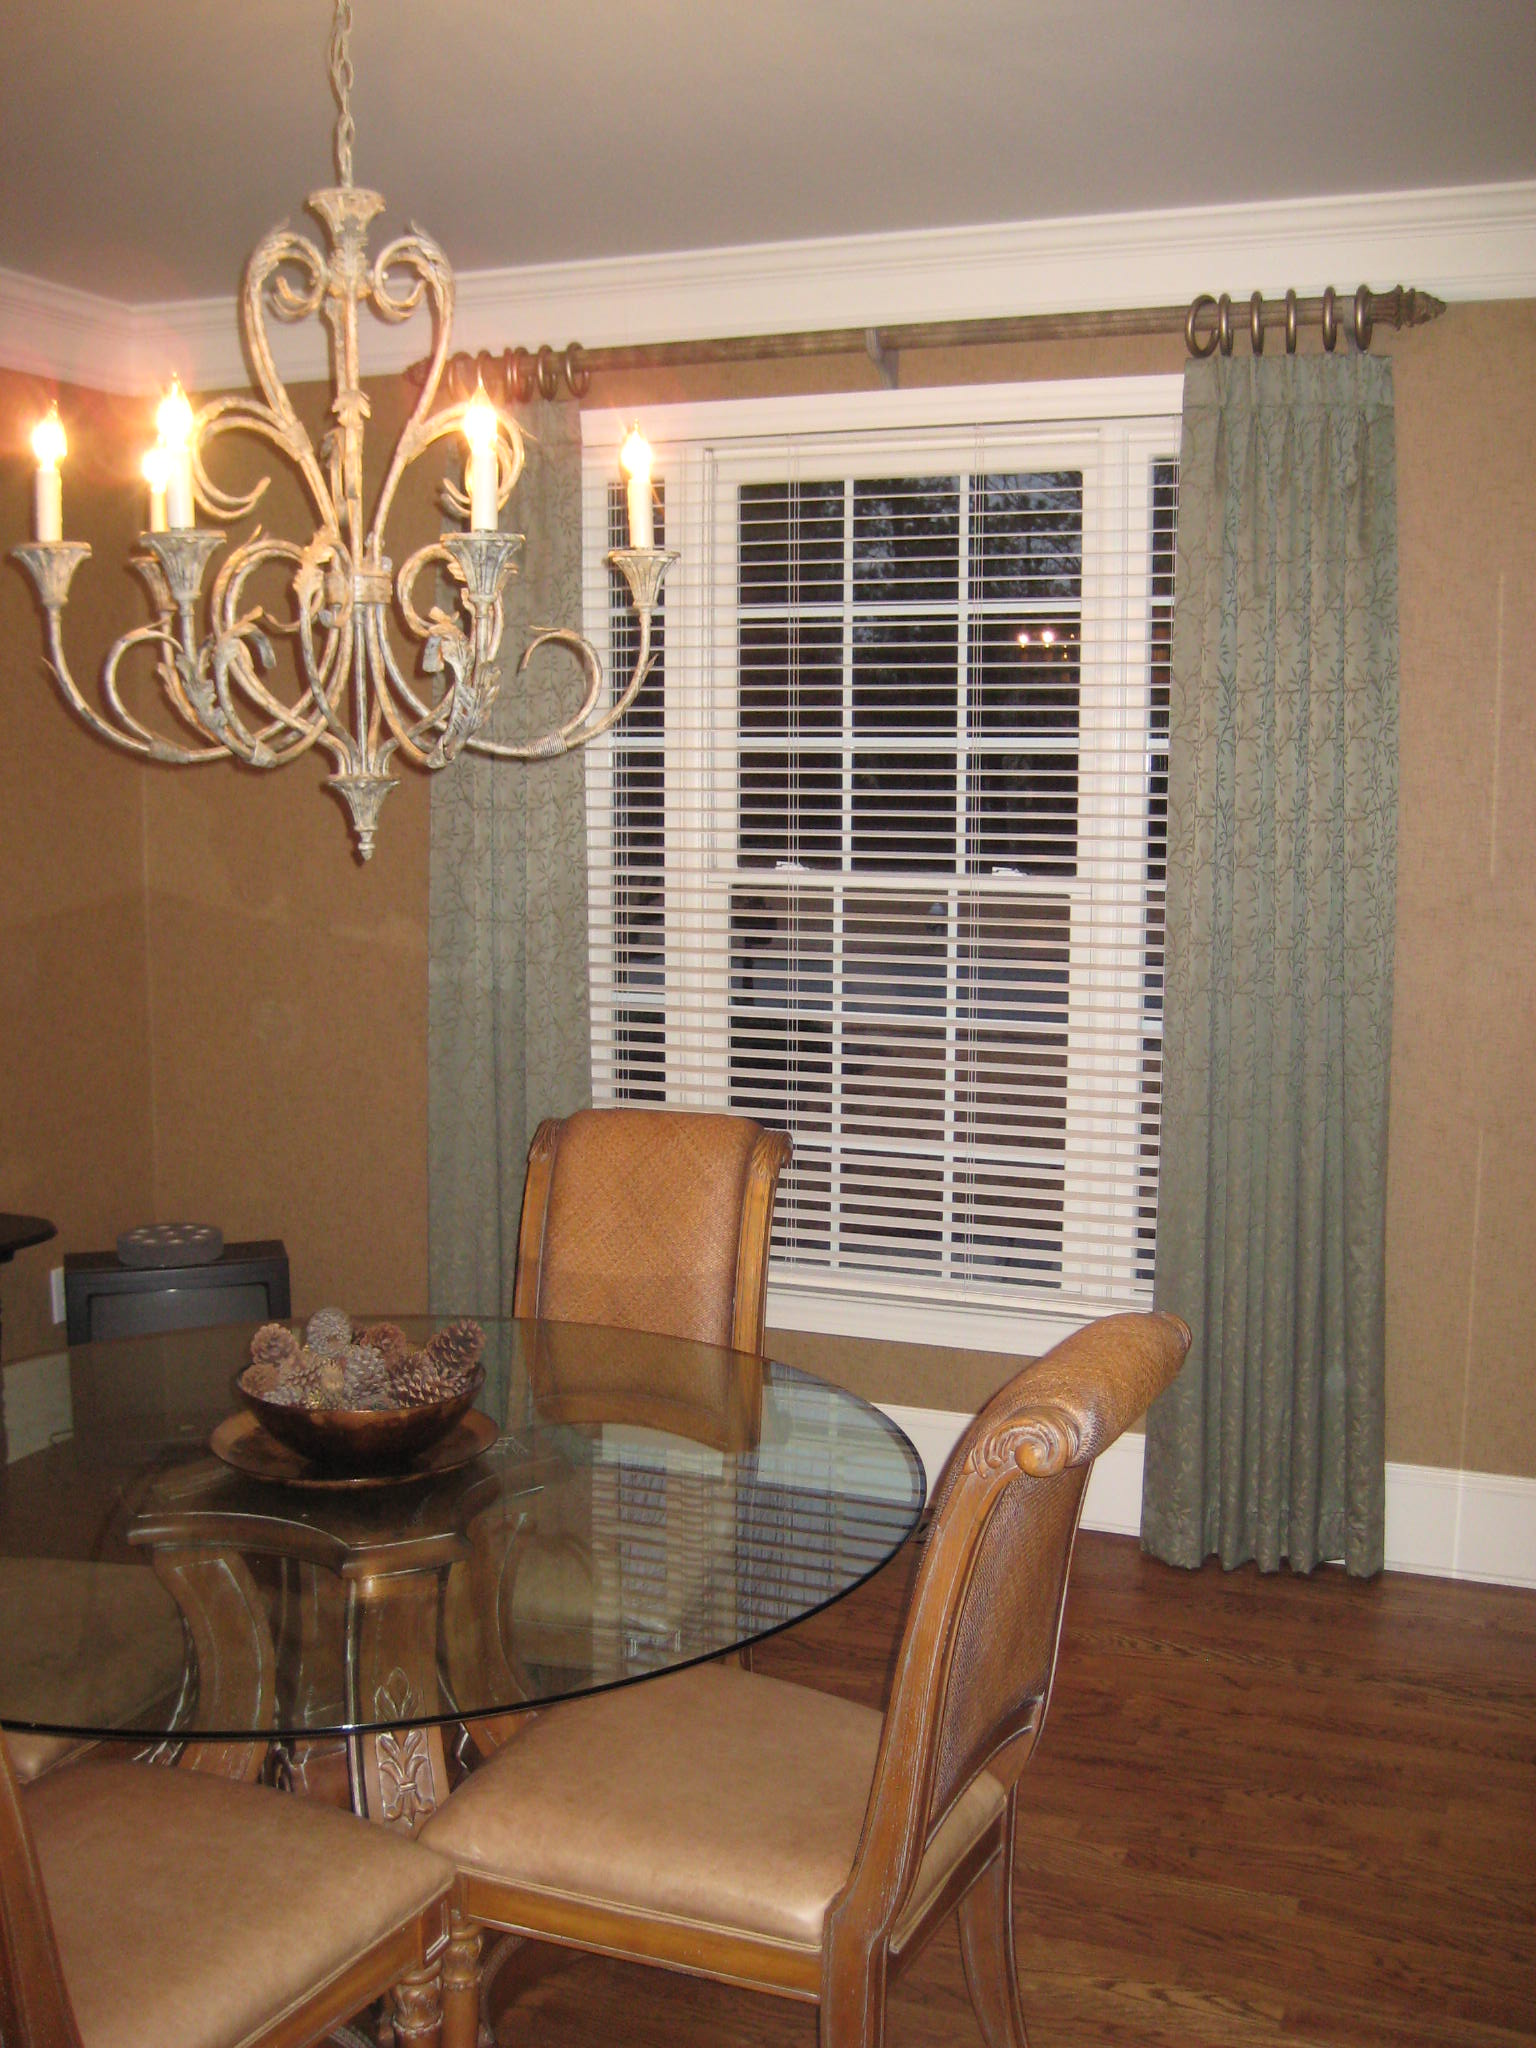 Dining Room - Beautiful fabric window treatments & hardware compliment & finish off this lovely Dining Room.